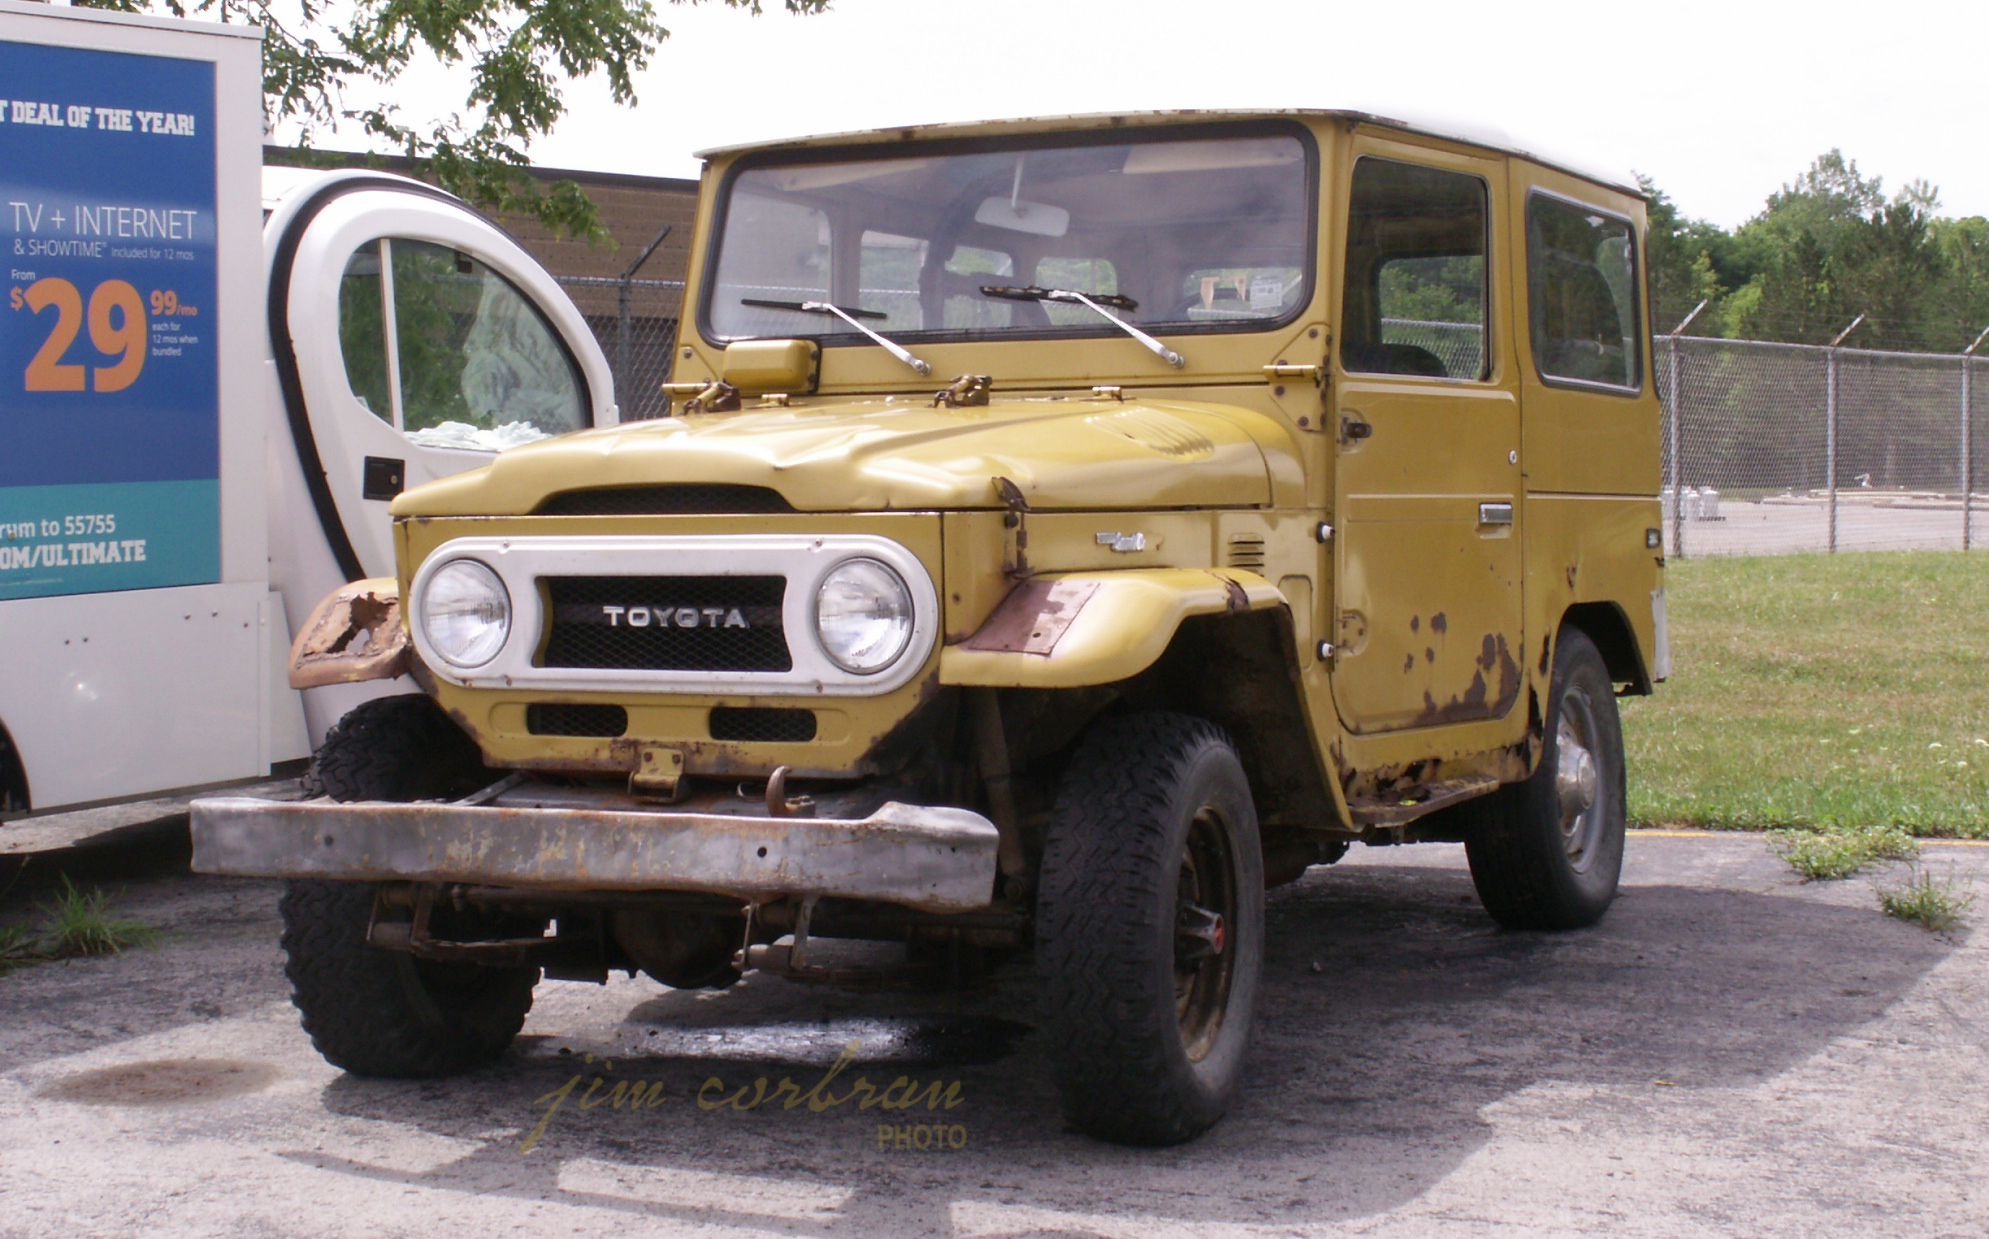 RealRides of WNY - 1970s Toyota Land Cruiser